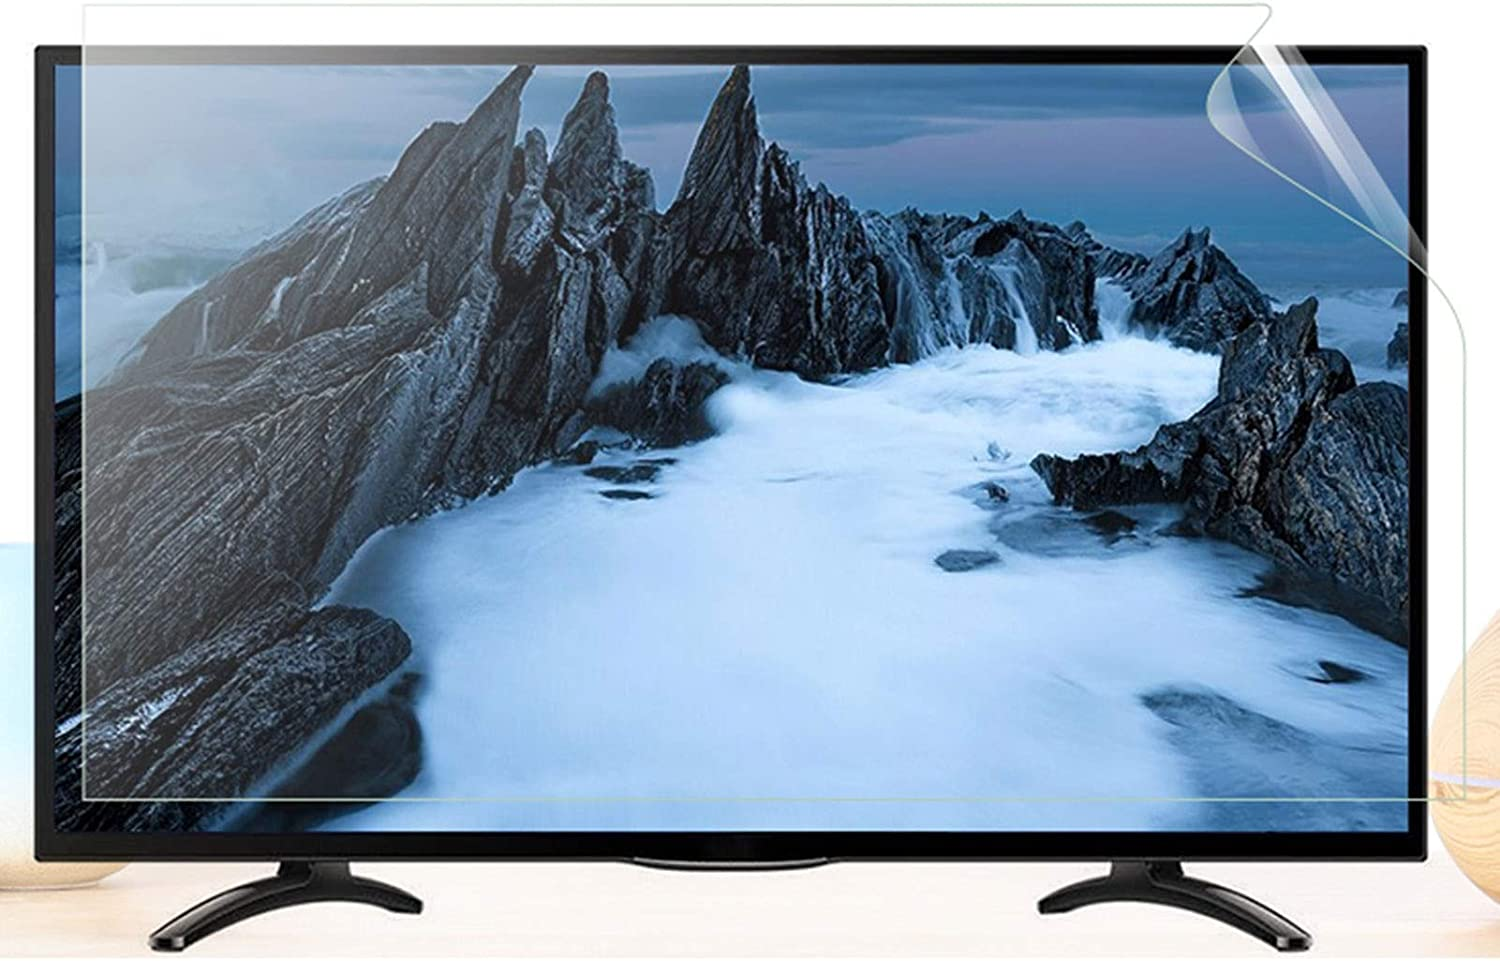 ZWYSL Anti-Glare Anti-Scratch for 32-75 Monitor TV inch Screen Max 48% 67% OFF of fixed price OFF